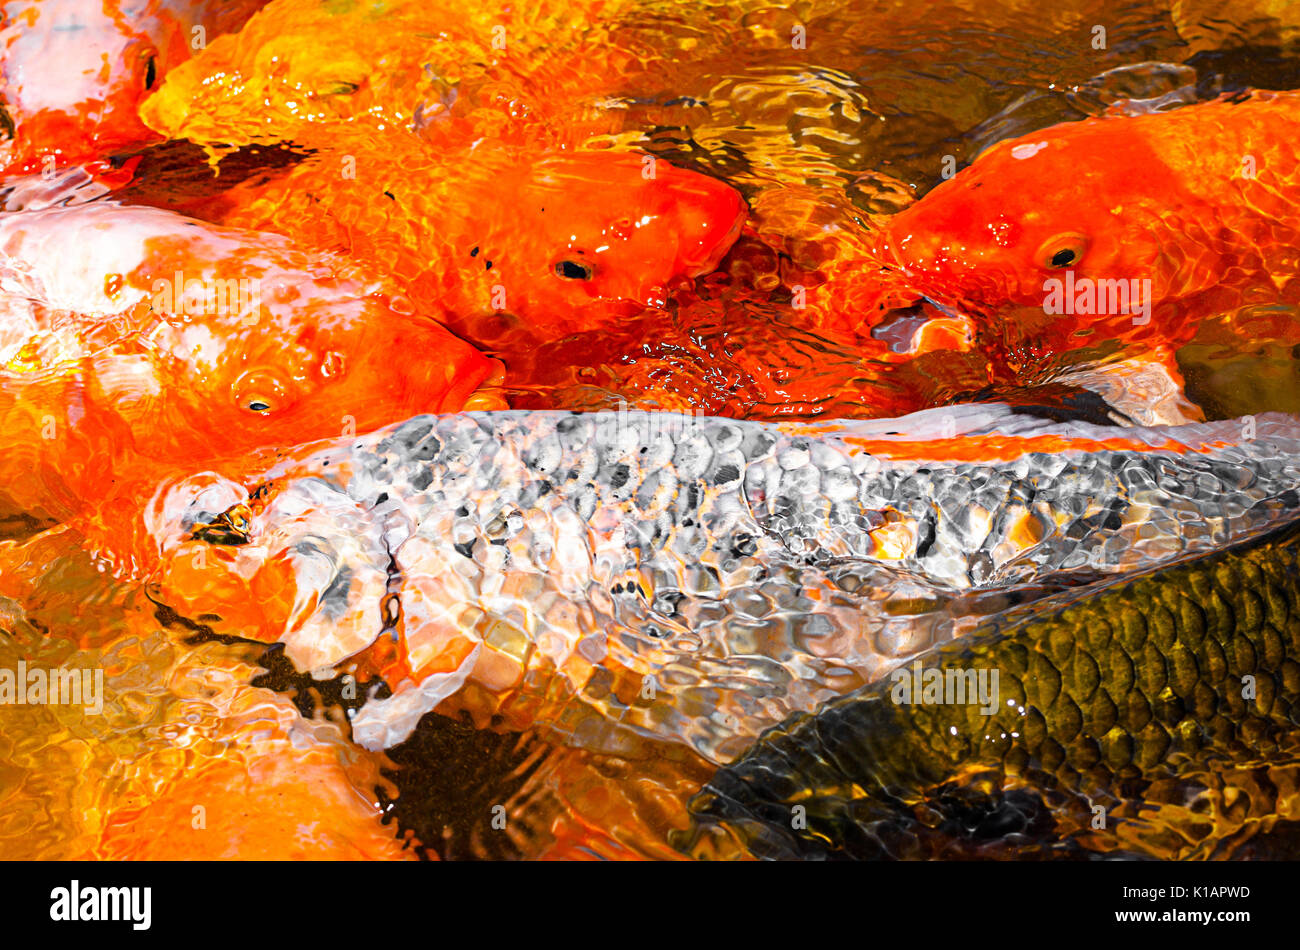 Ornamental Fish Stock Photos & Ornamental Fish Stock Images - Alamy